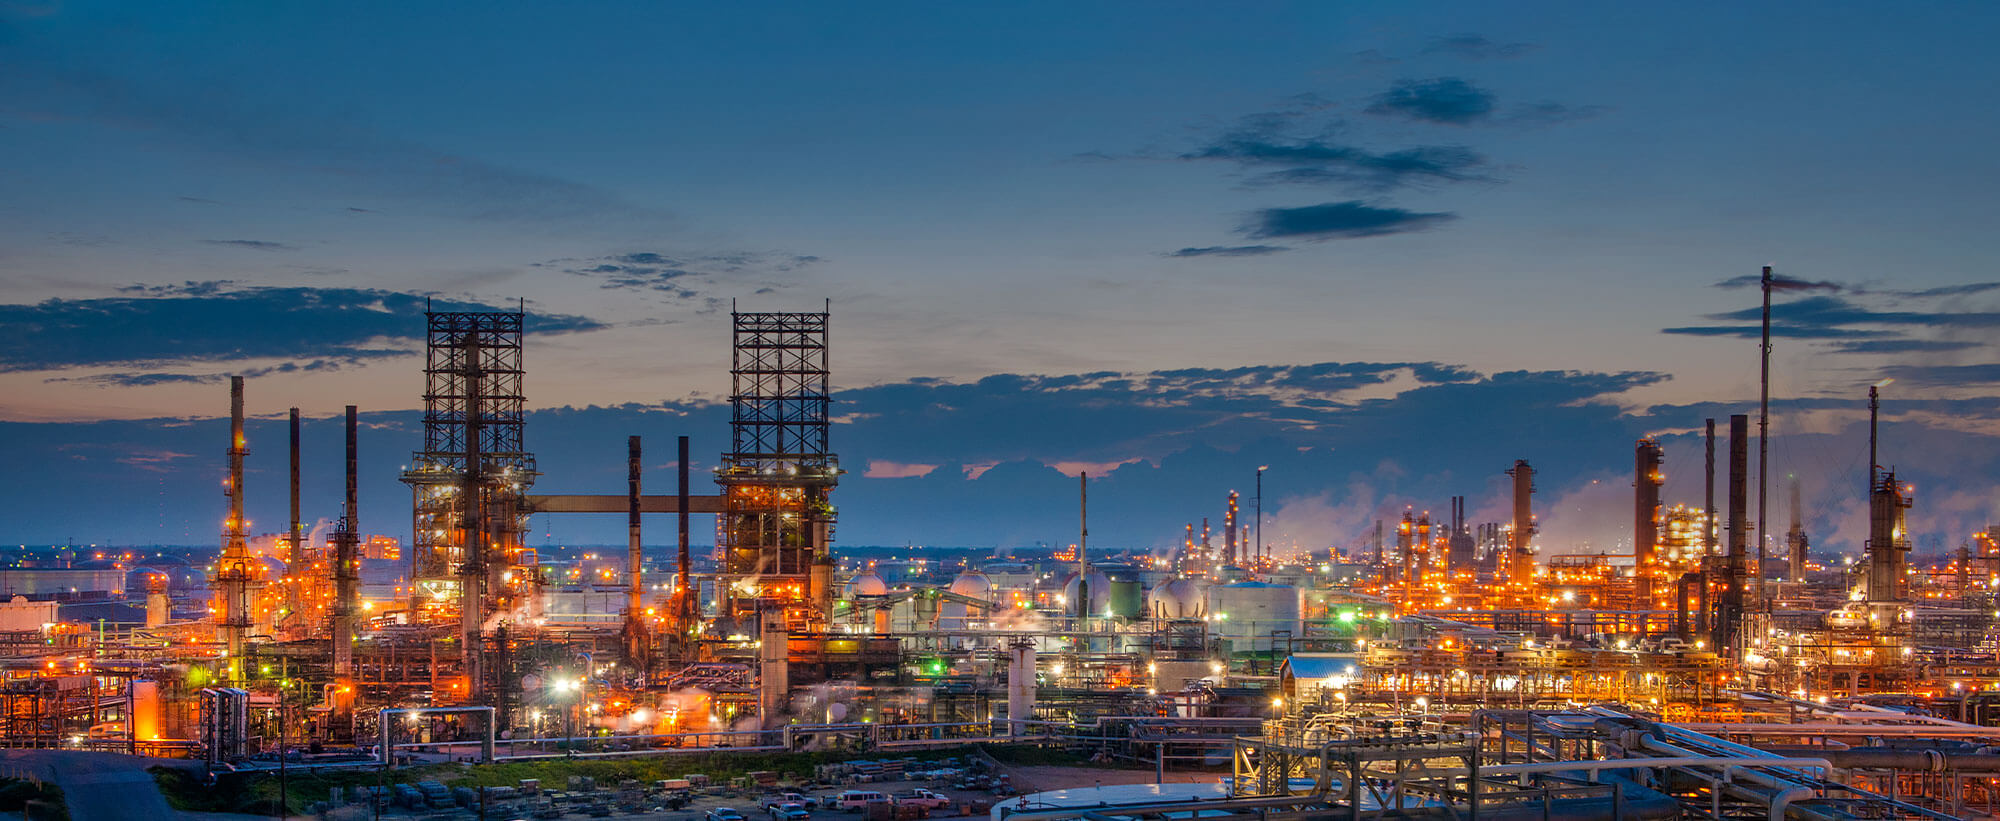 Panoramic side view of refinery at dusk